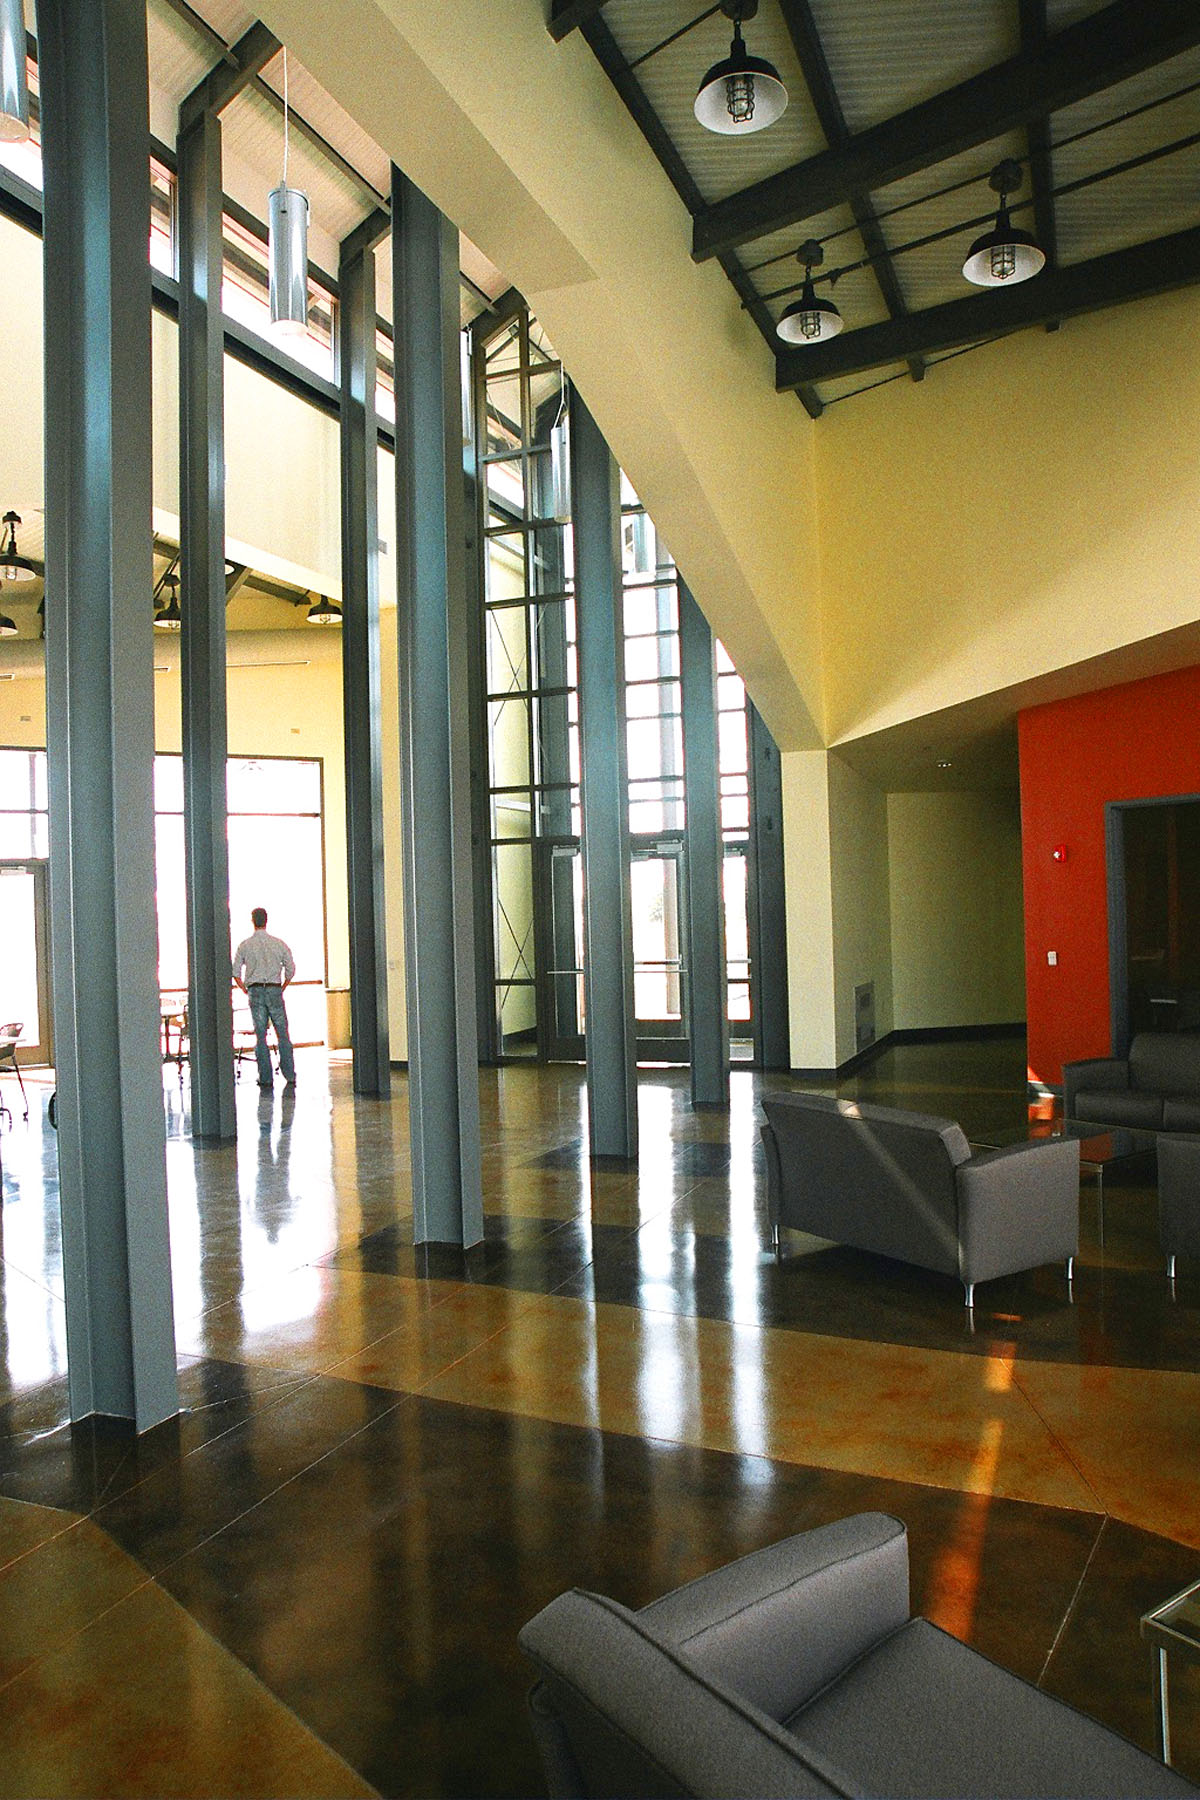 A man stands in the main lobby of the Agricultural Teaching and Research Facility.